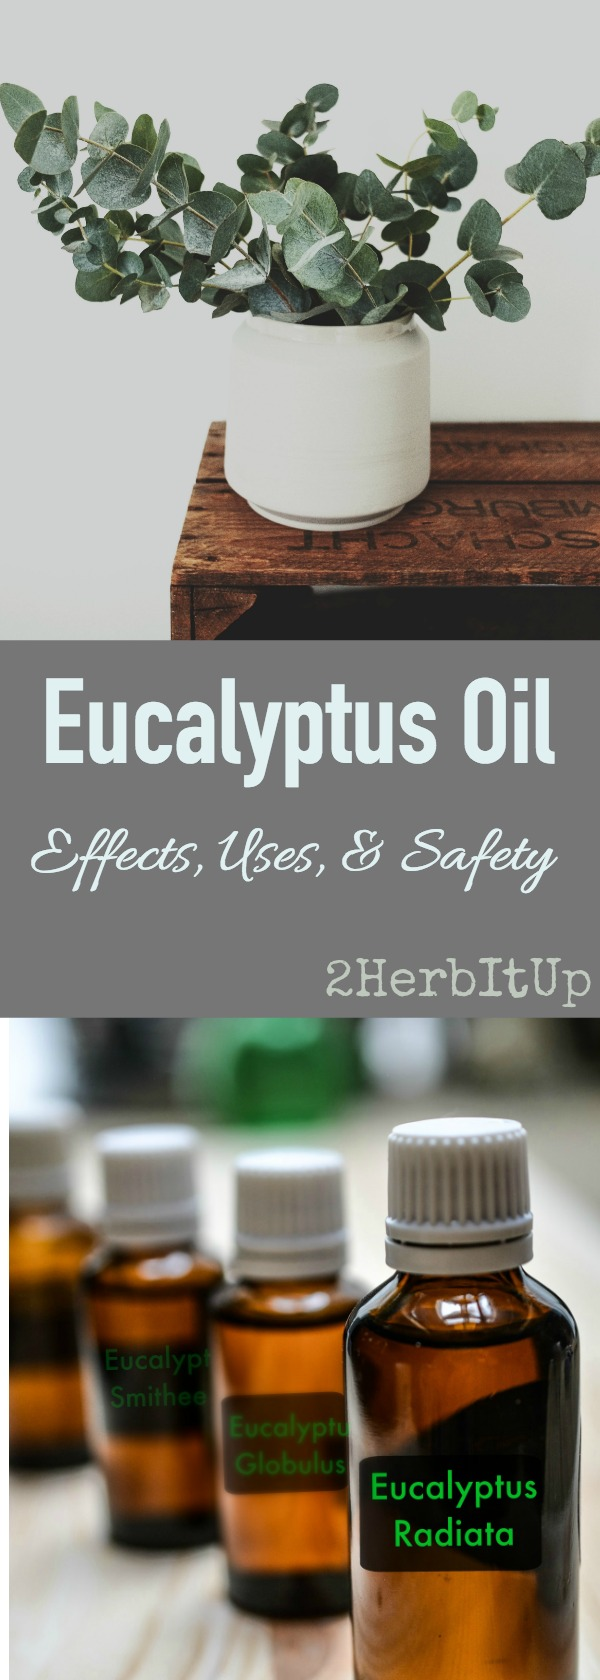 Learn how to safely and effectively use eucalyptus essential oil. Safety recommendations for eucalyptus oil for all ages.